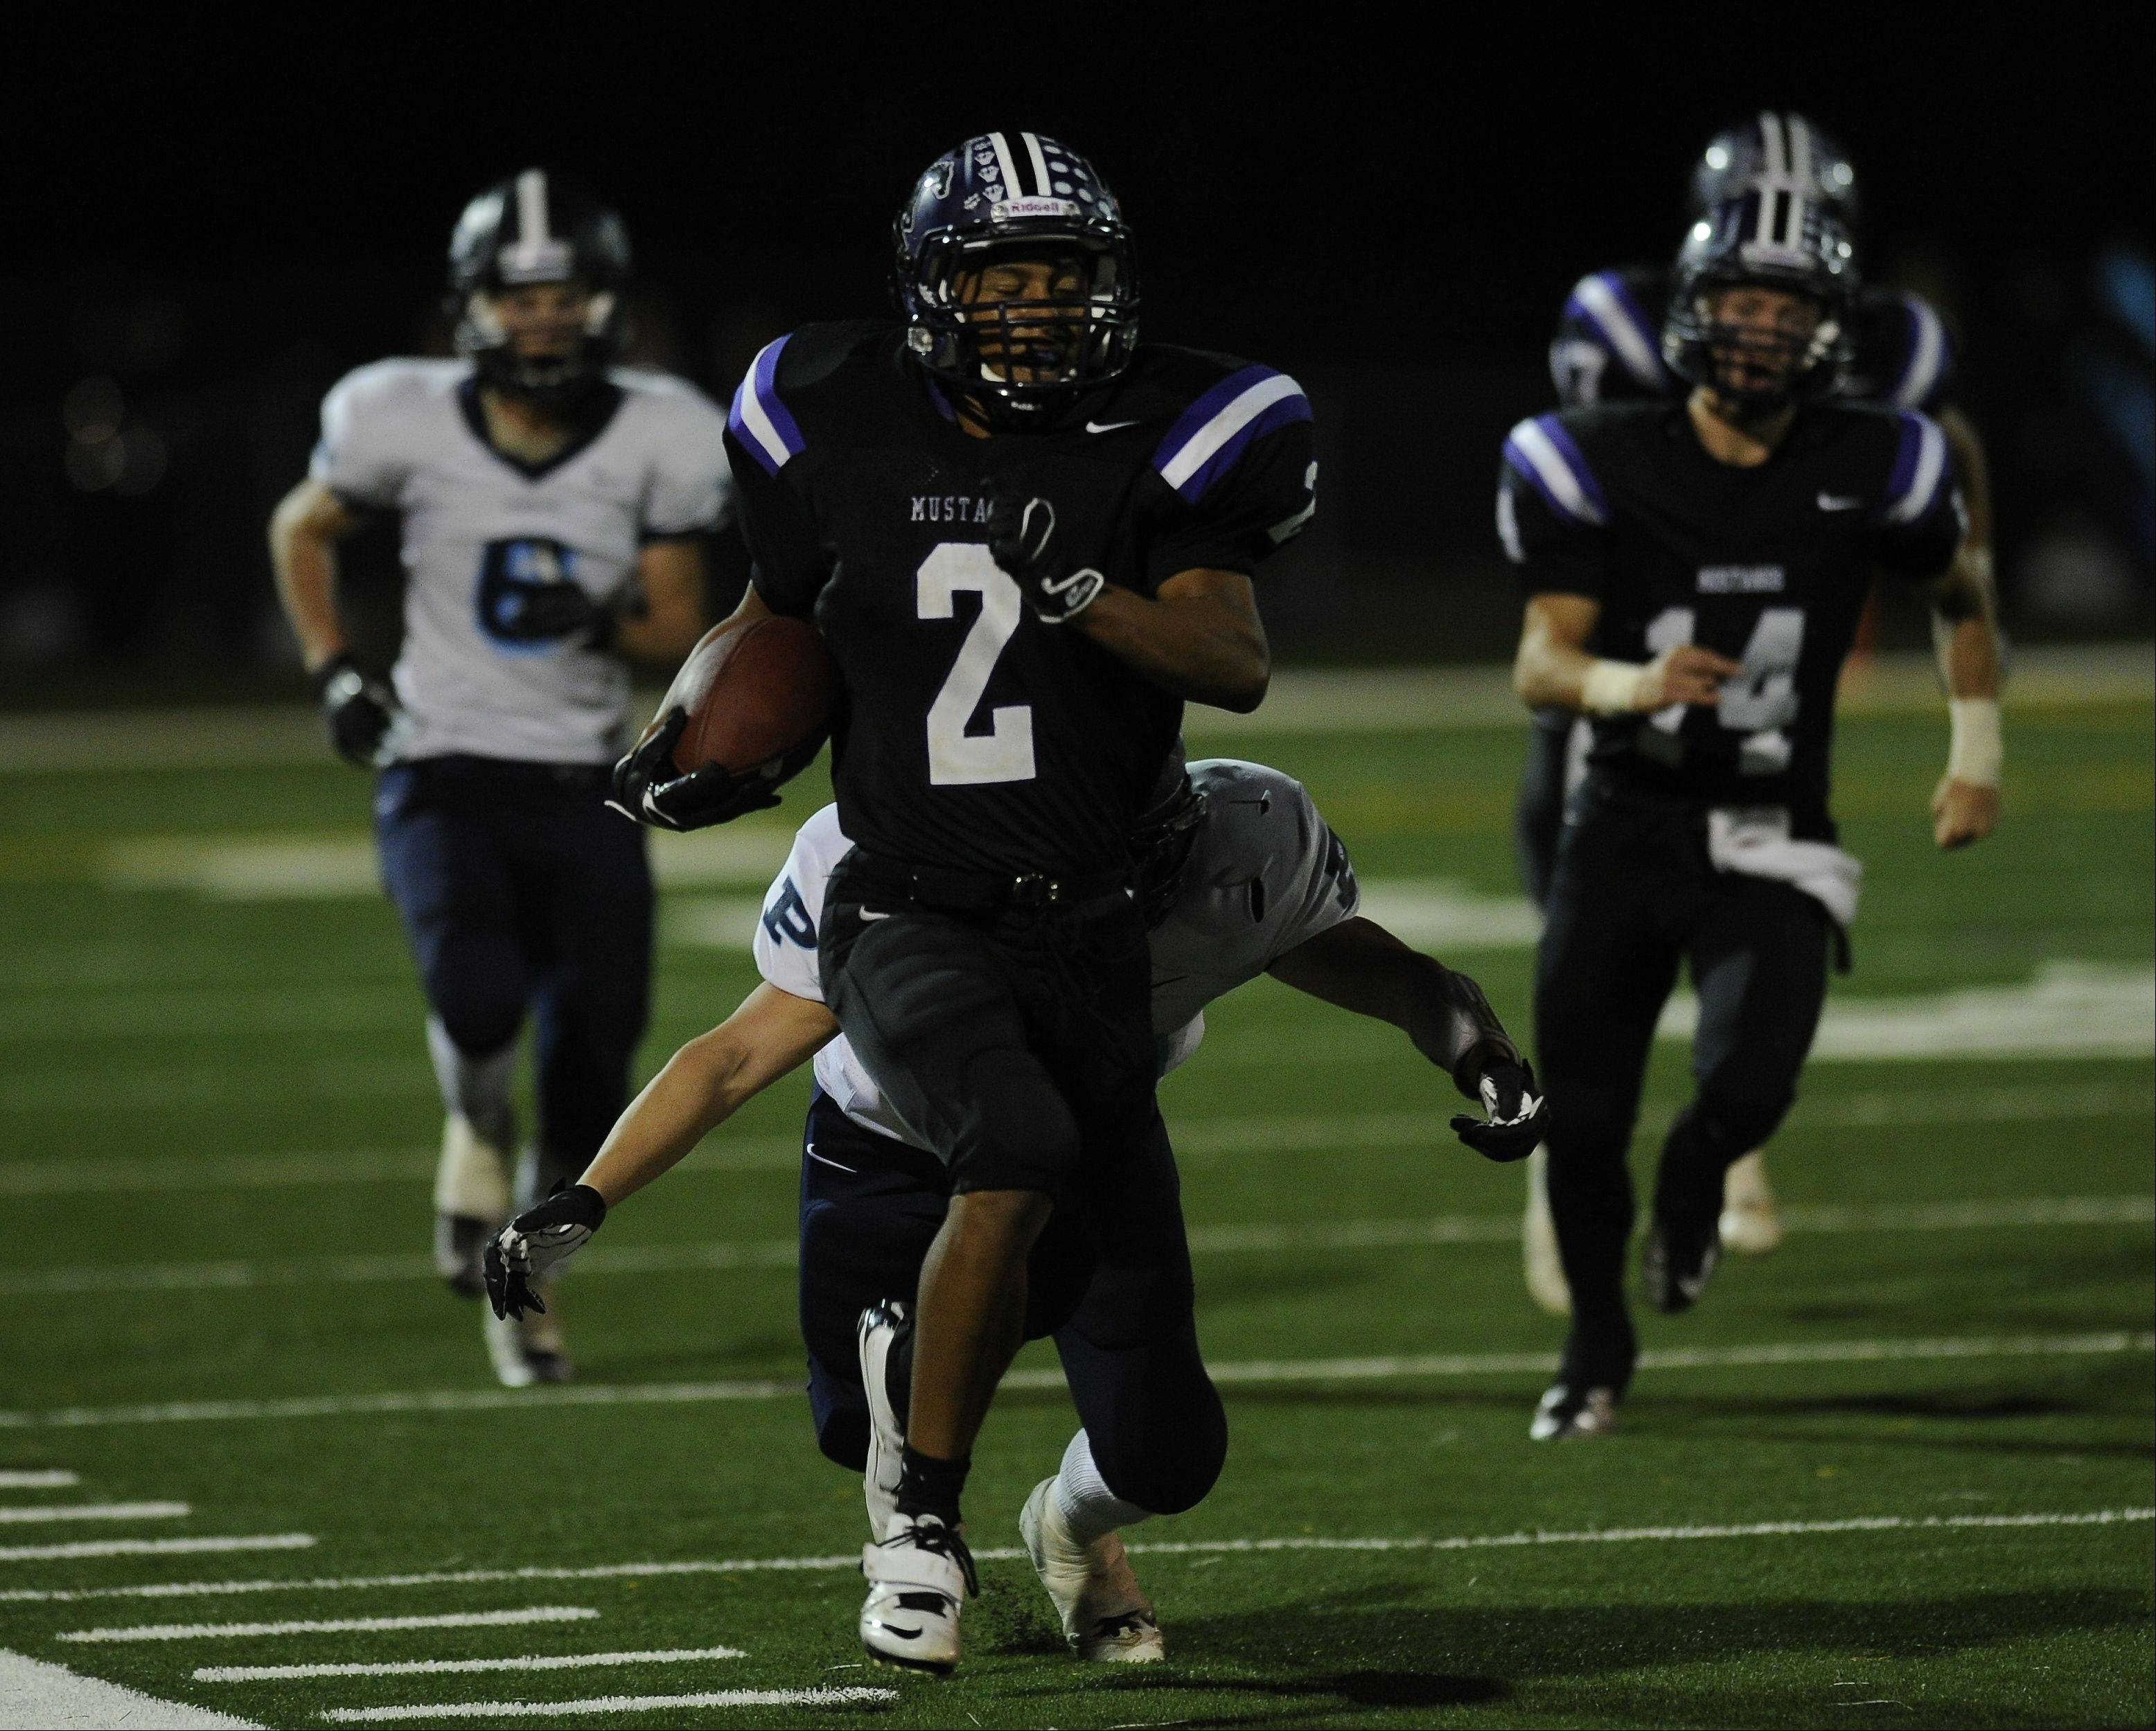 Week -6- Photos from the Prospect vs. Rolling Meadows football game Friday, September 28th at Rolling Meadows High School.